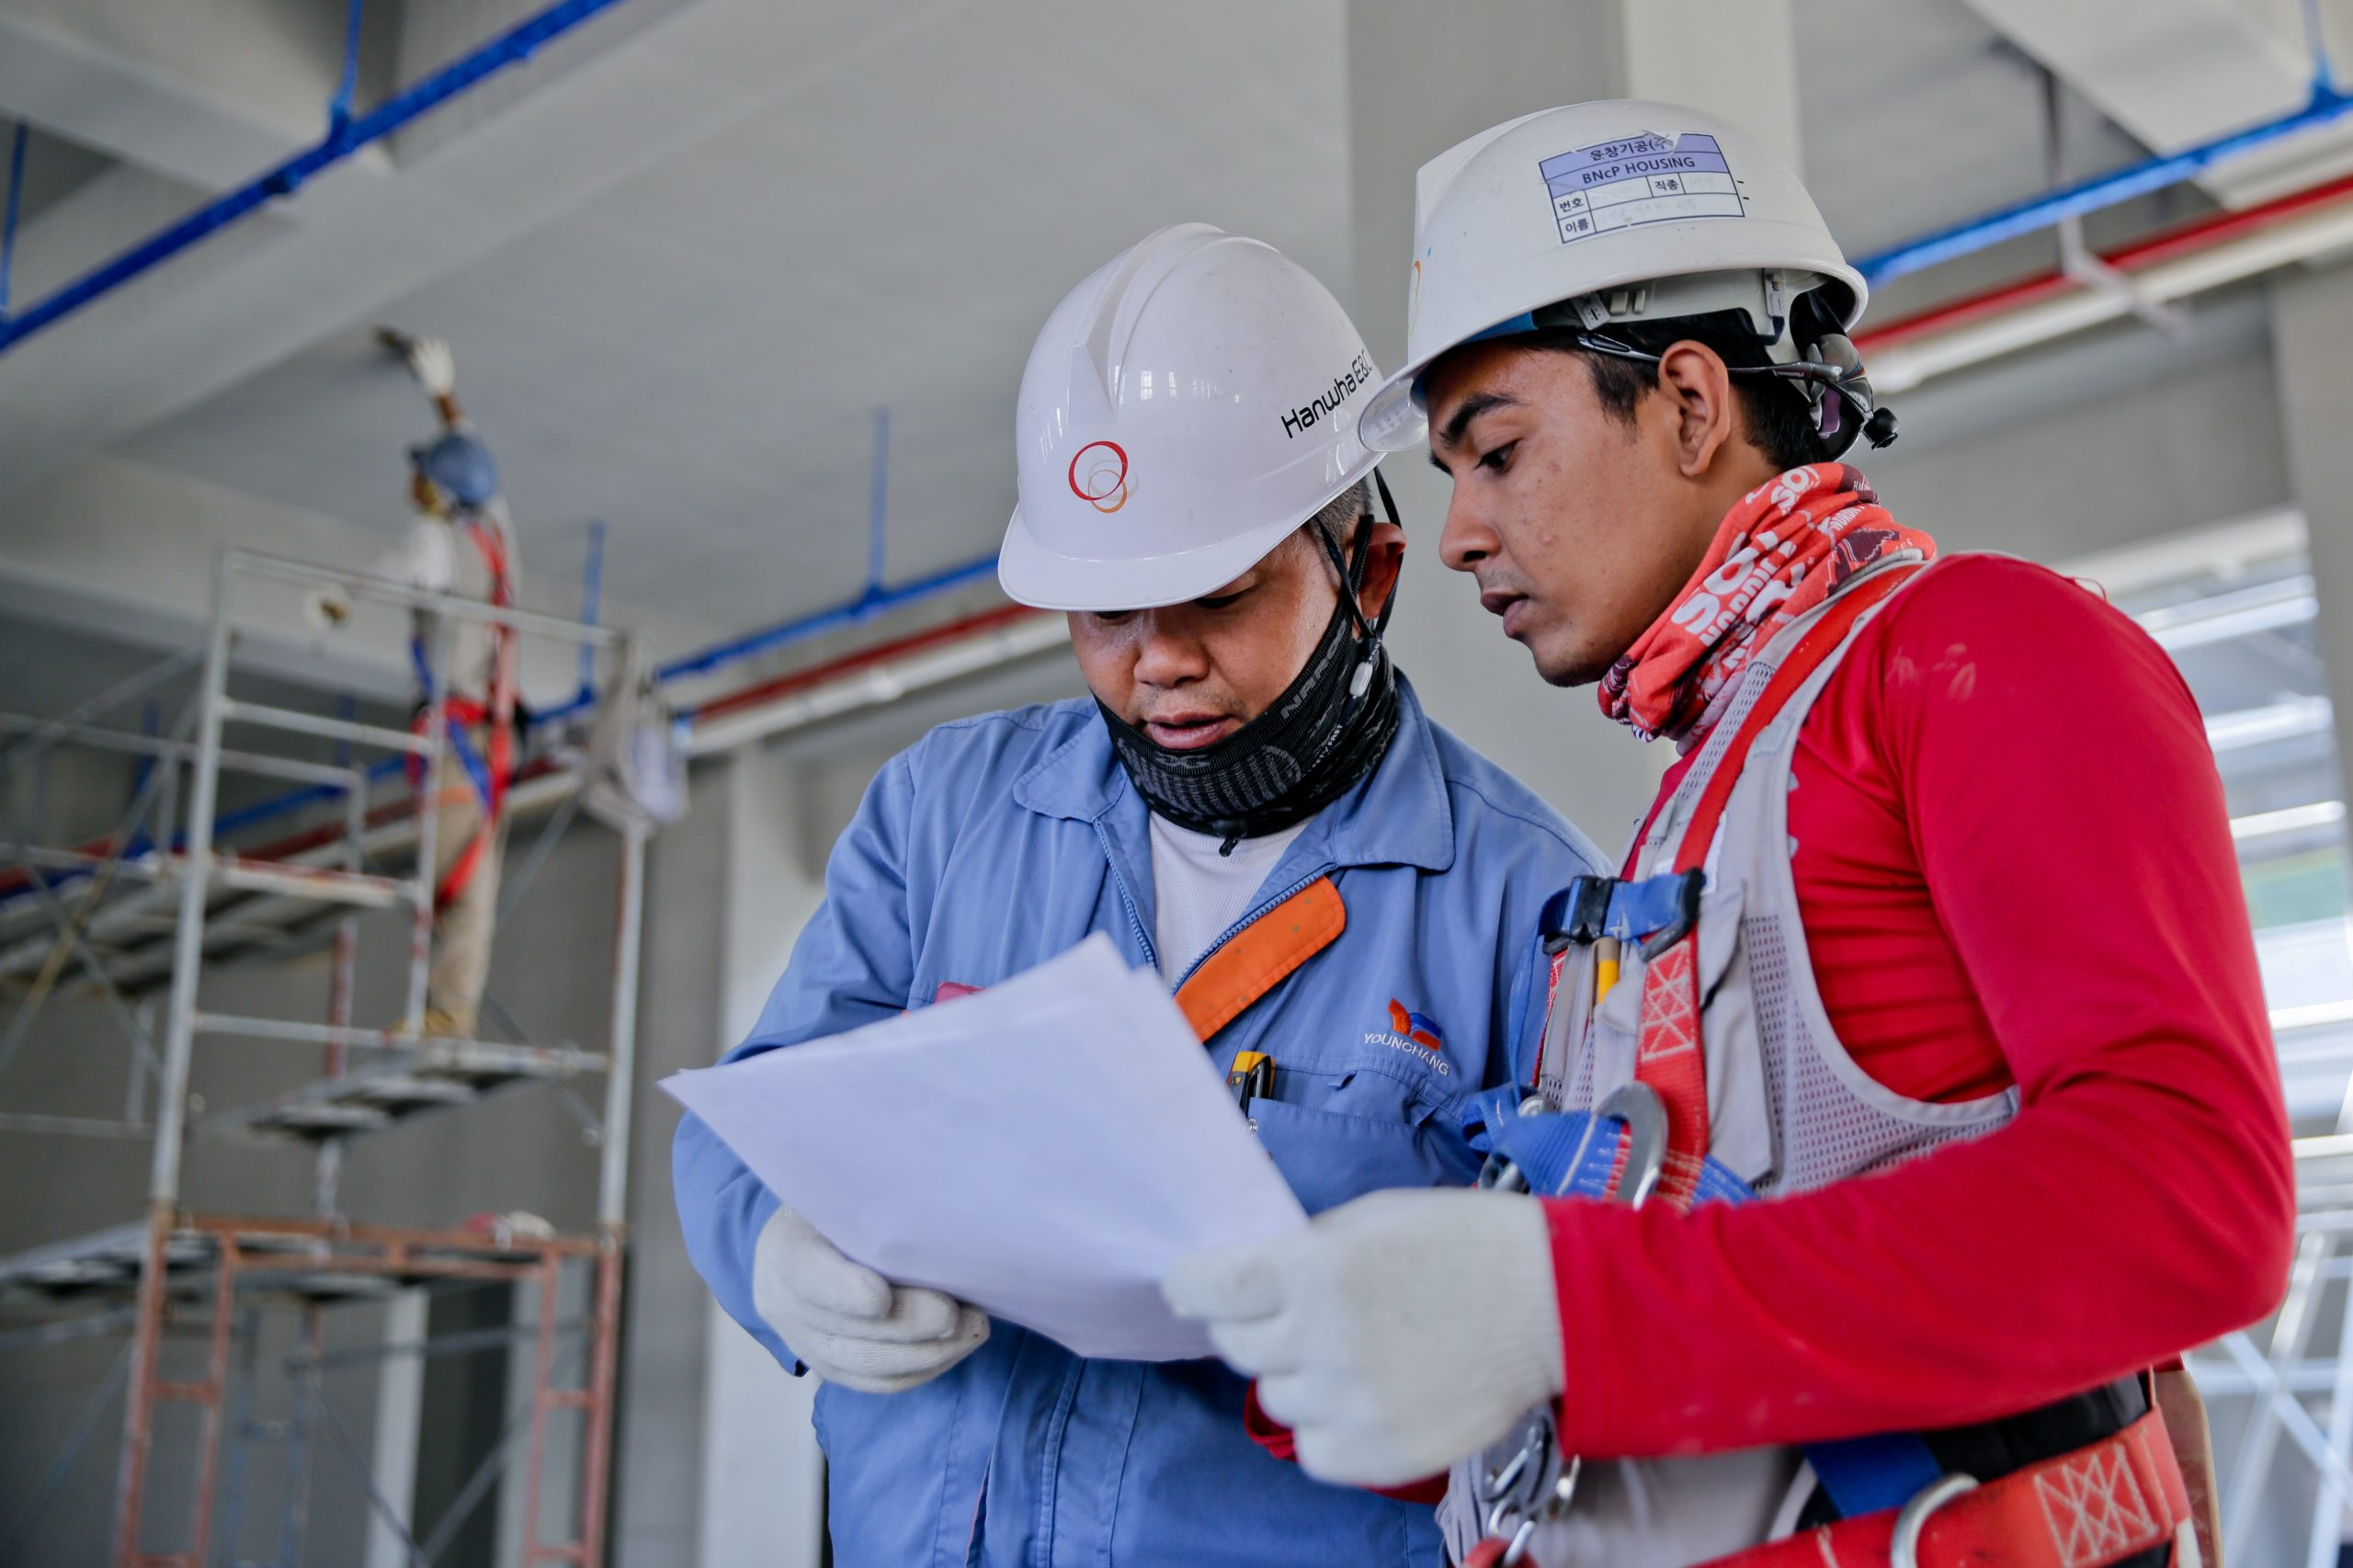 Workers consulting a checklist